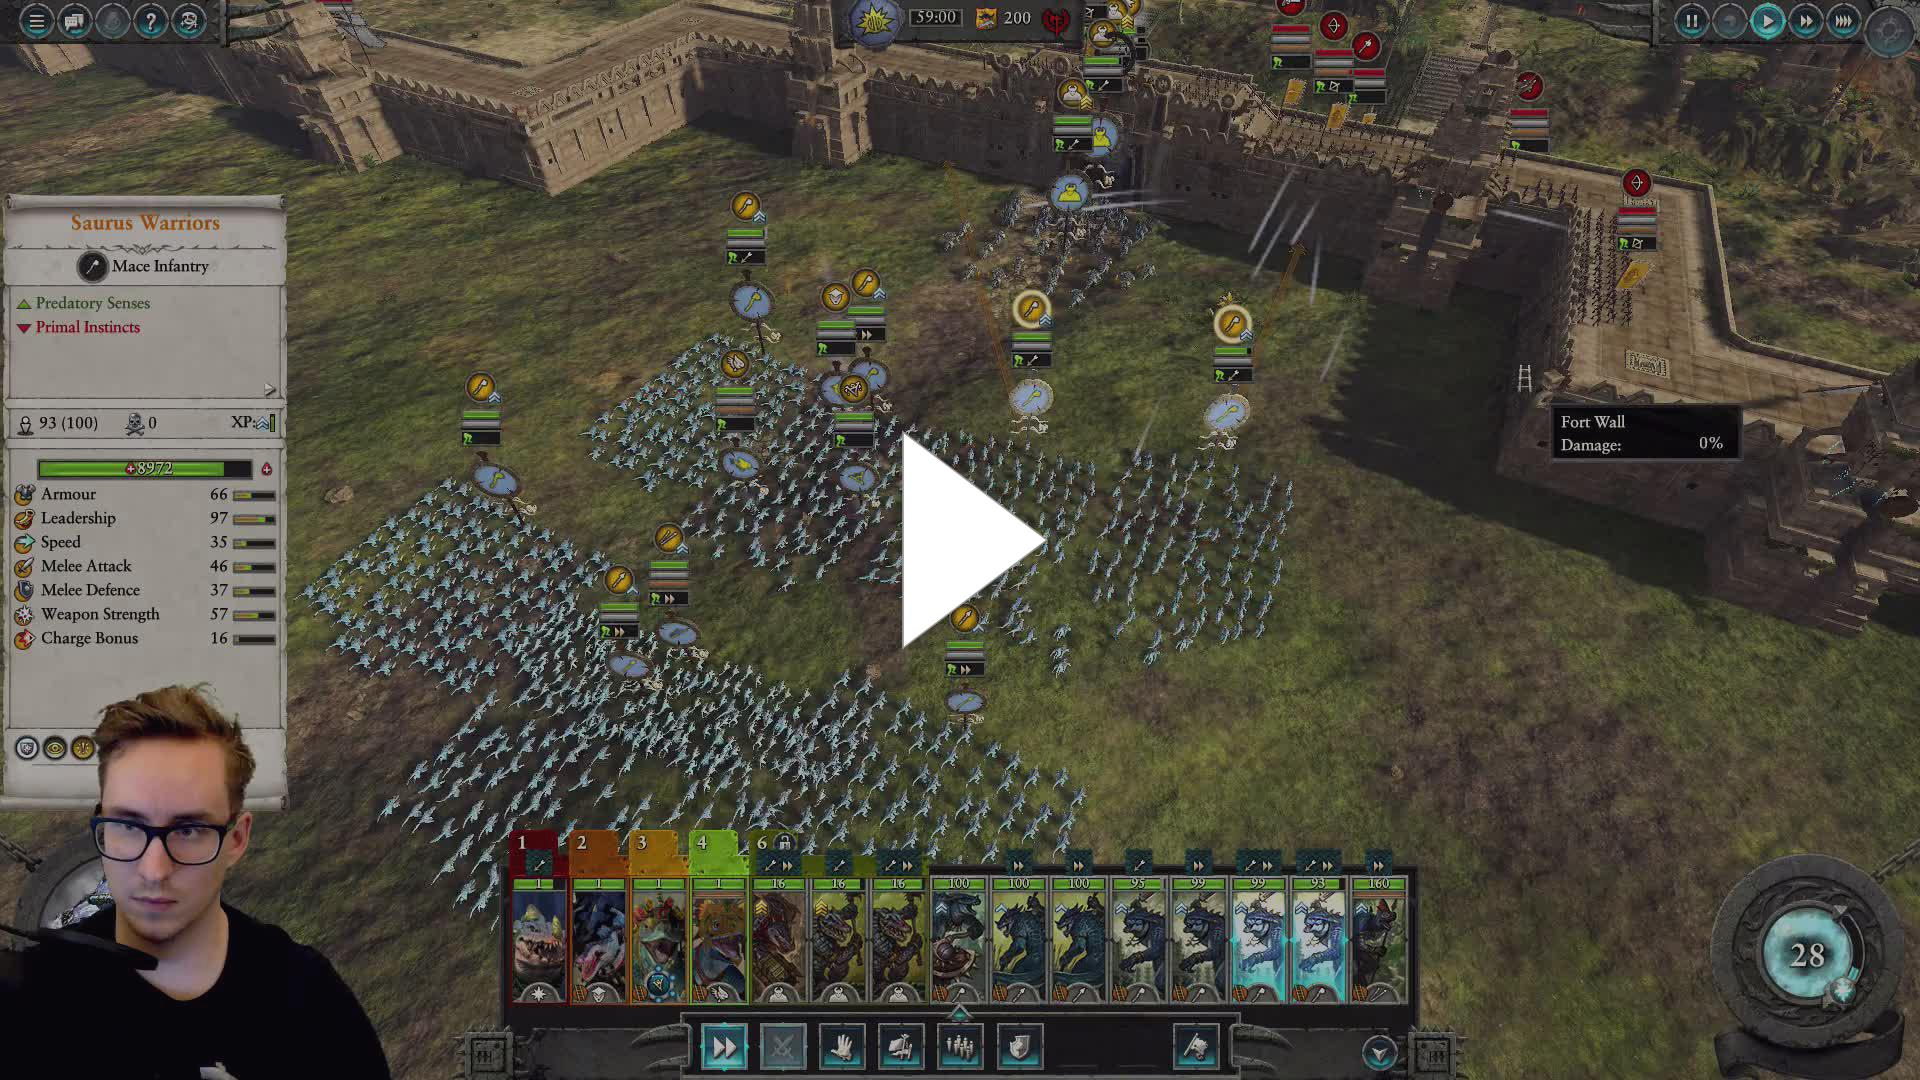 Nerdragefitness New Warhammer 2 Dlc Early Access Nakai The Wanderer Twitch For those of you who have no idea, total war warhammer released some more dlc. twitch